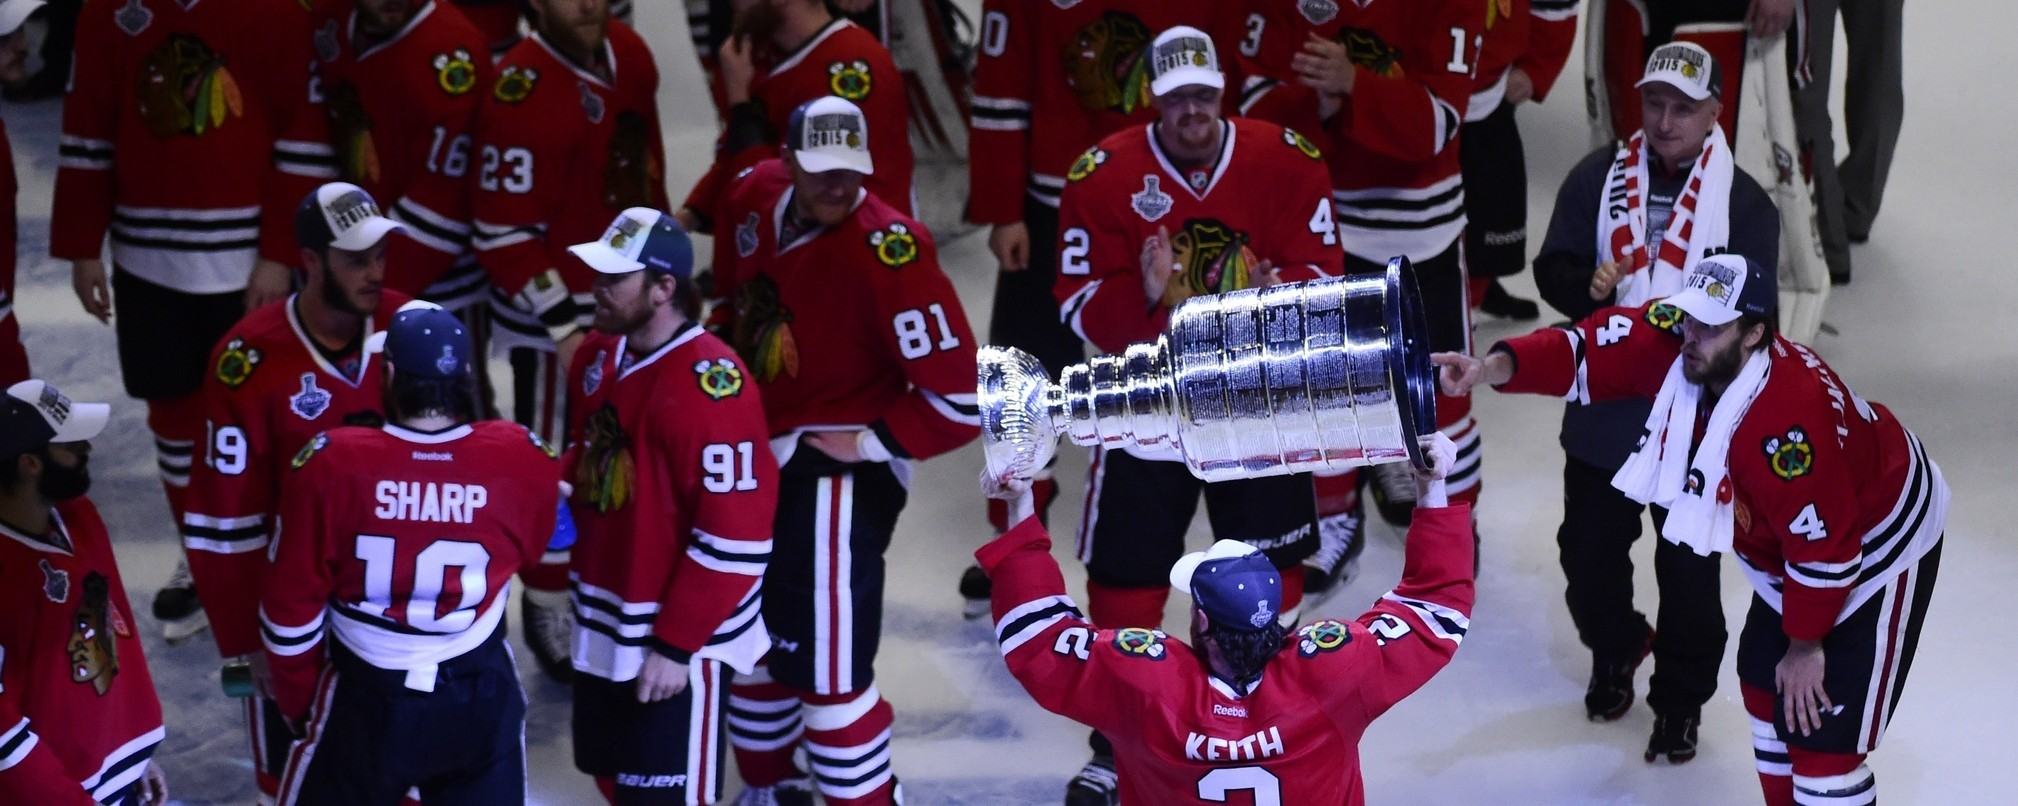 Could This Be the Blackhawks' Last Hurrah?